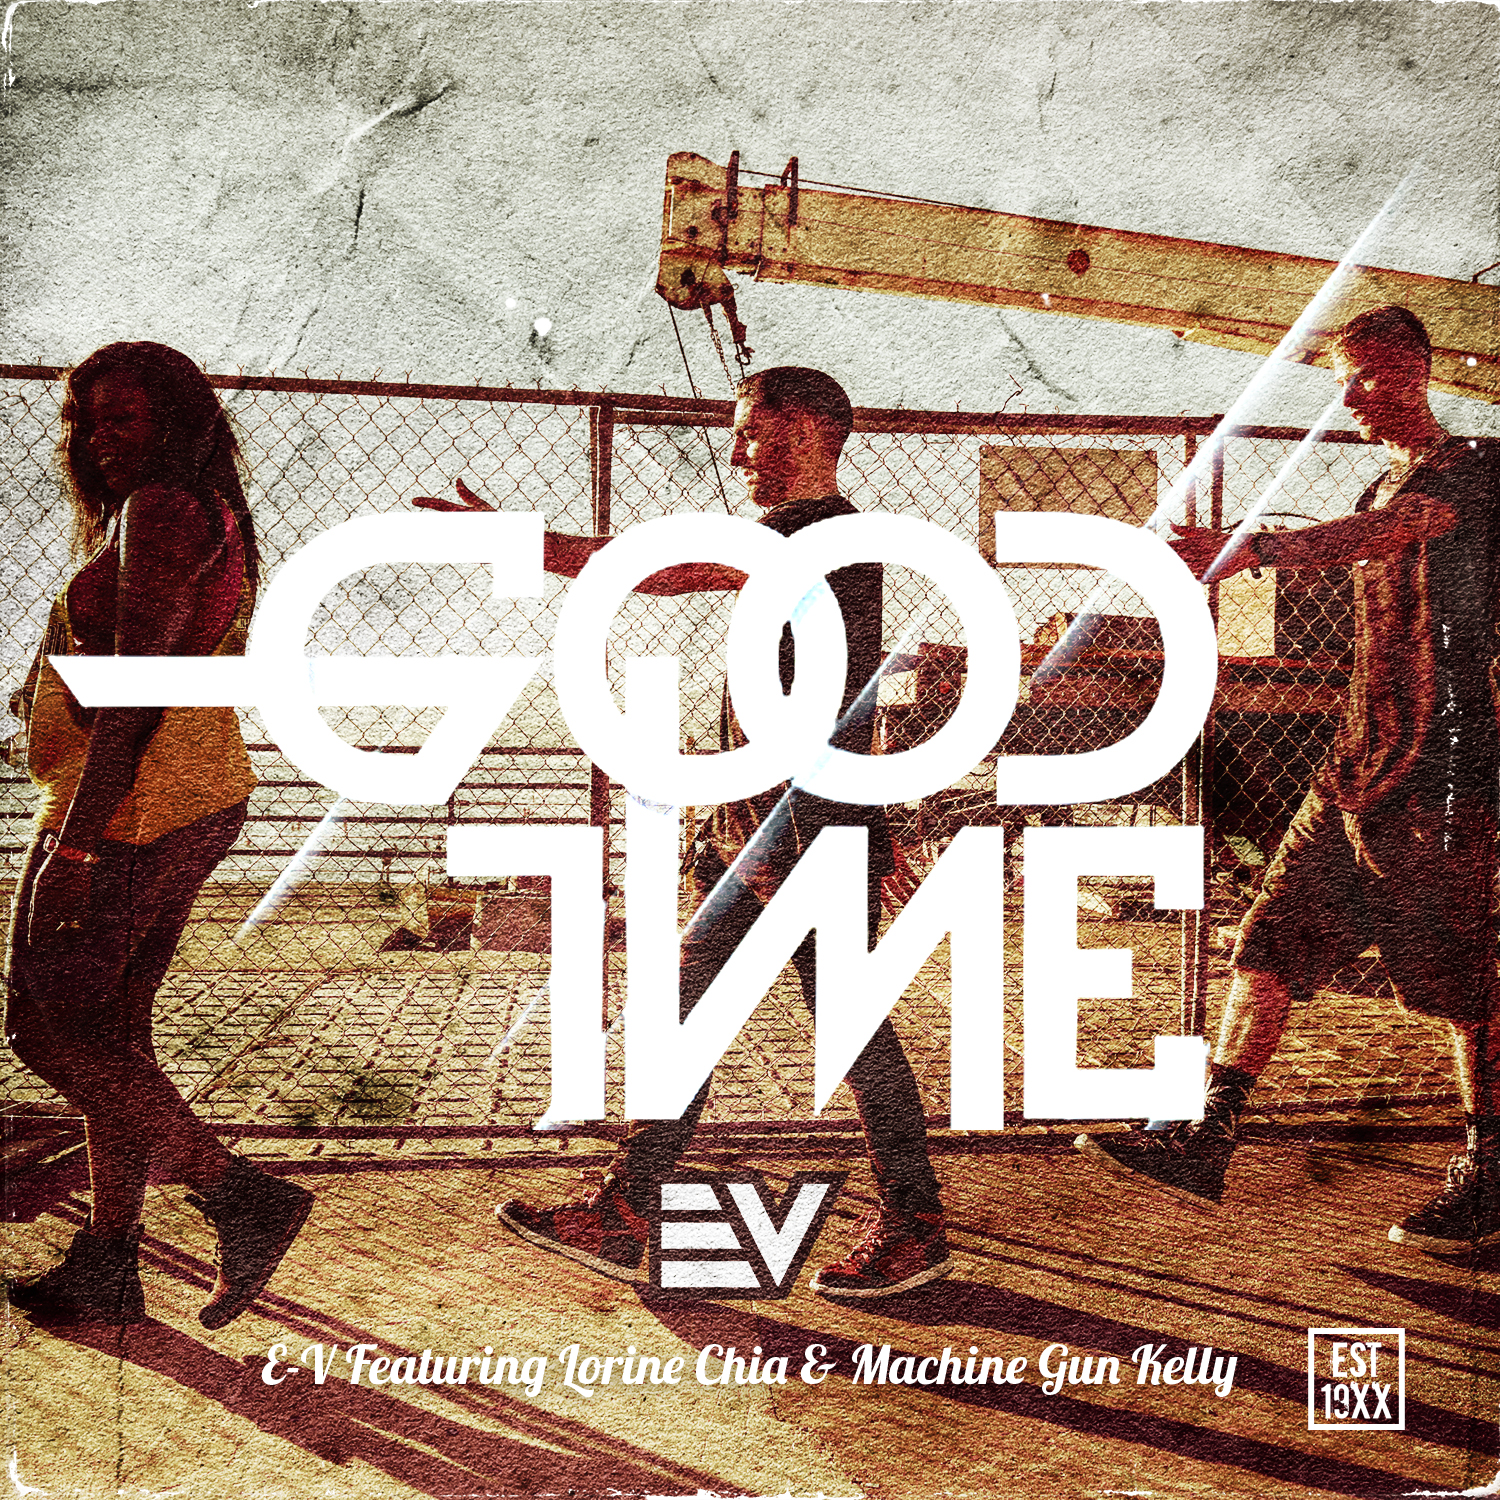 GOODTIME ARTWORK